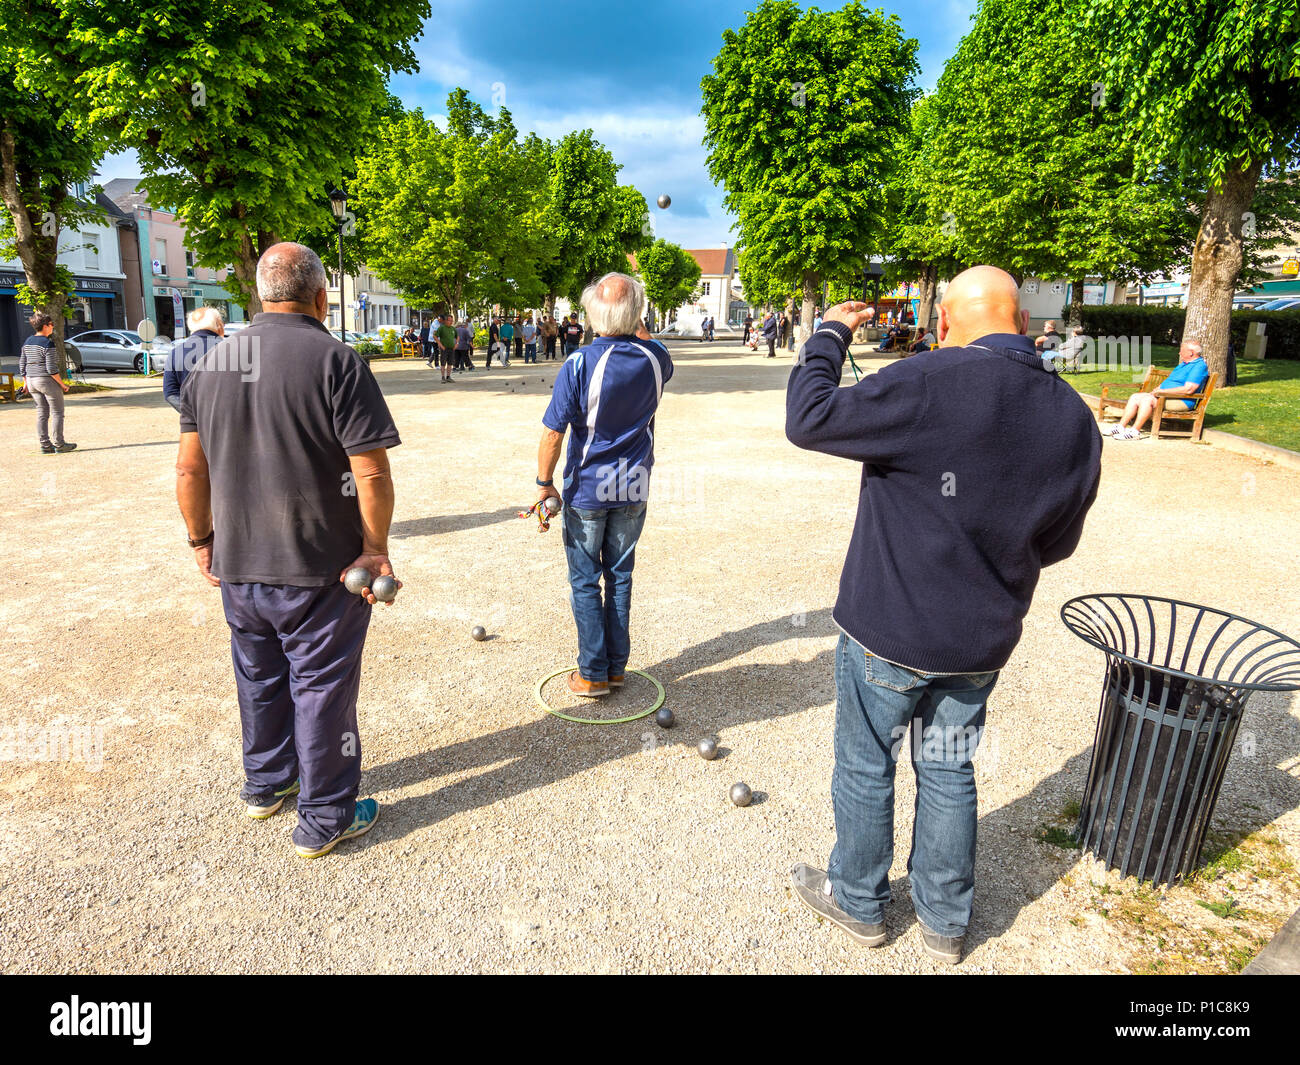 Men playing boules in market square, La Roche Posay, France. - Stock Image